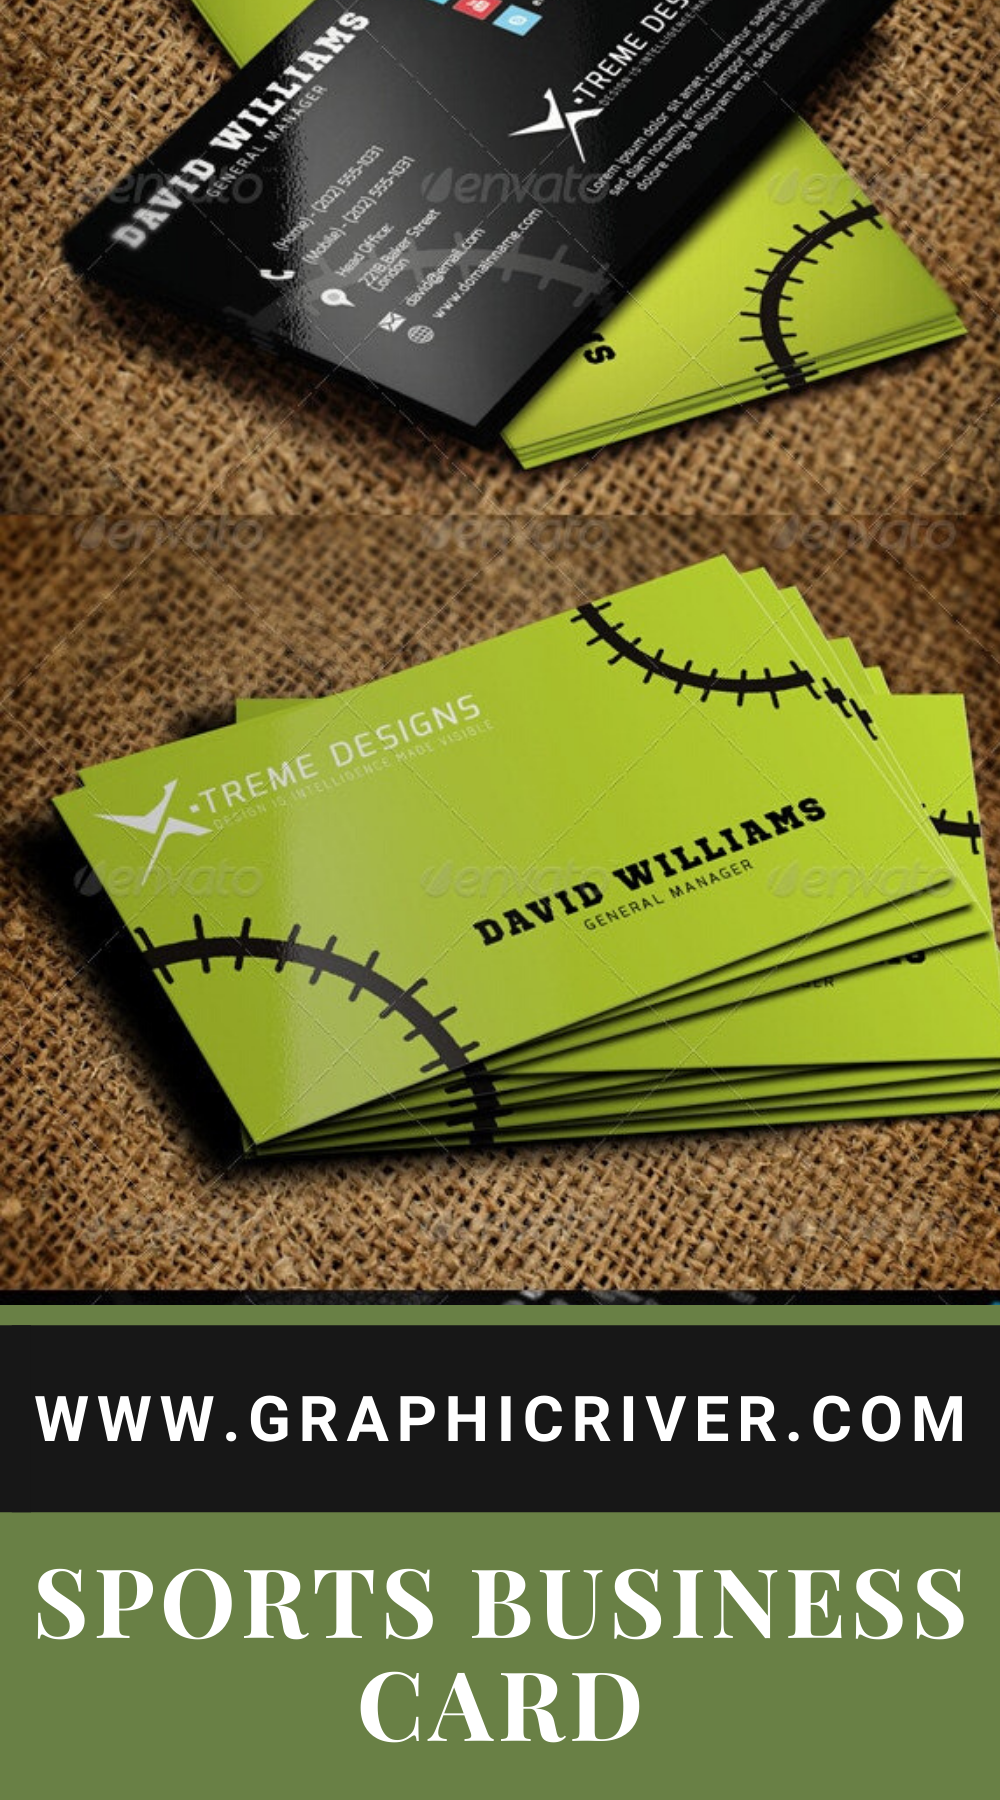 Sports Business Card In 2020 Sports Business Fitness Business Card Business Cards